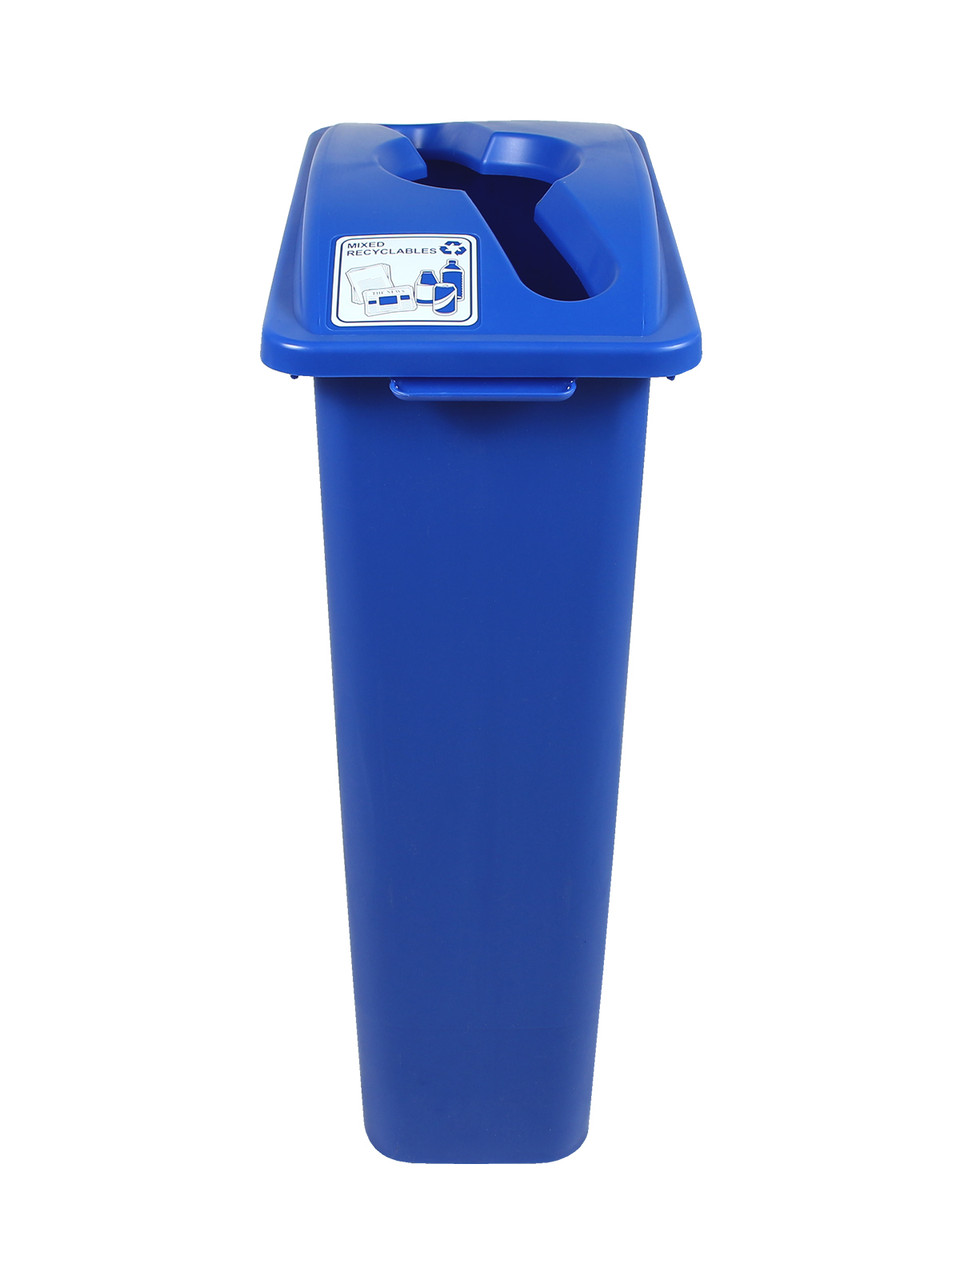 23 Gallon Blue Simple Sort Recycle Bin